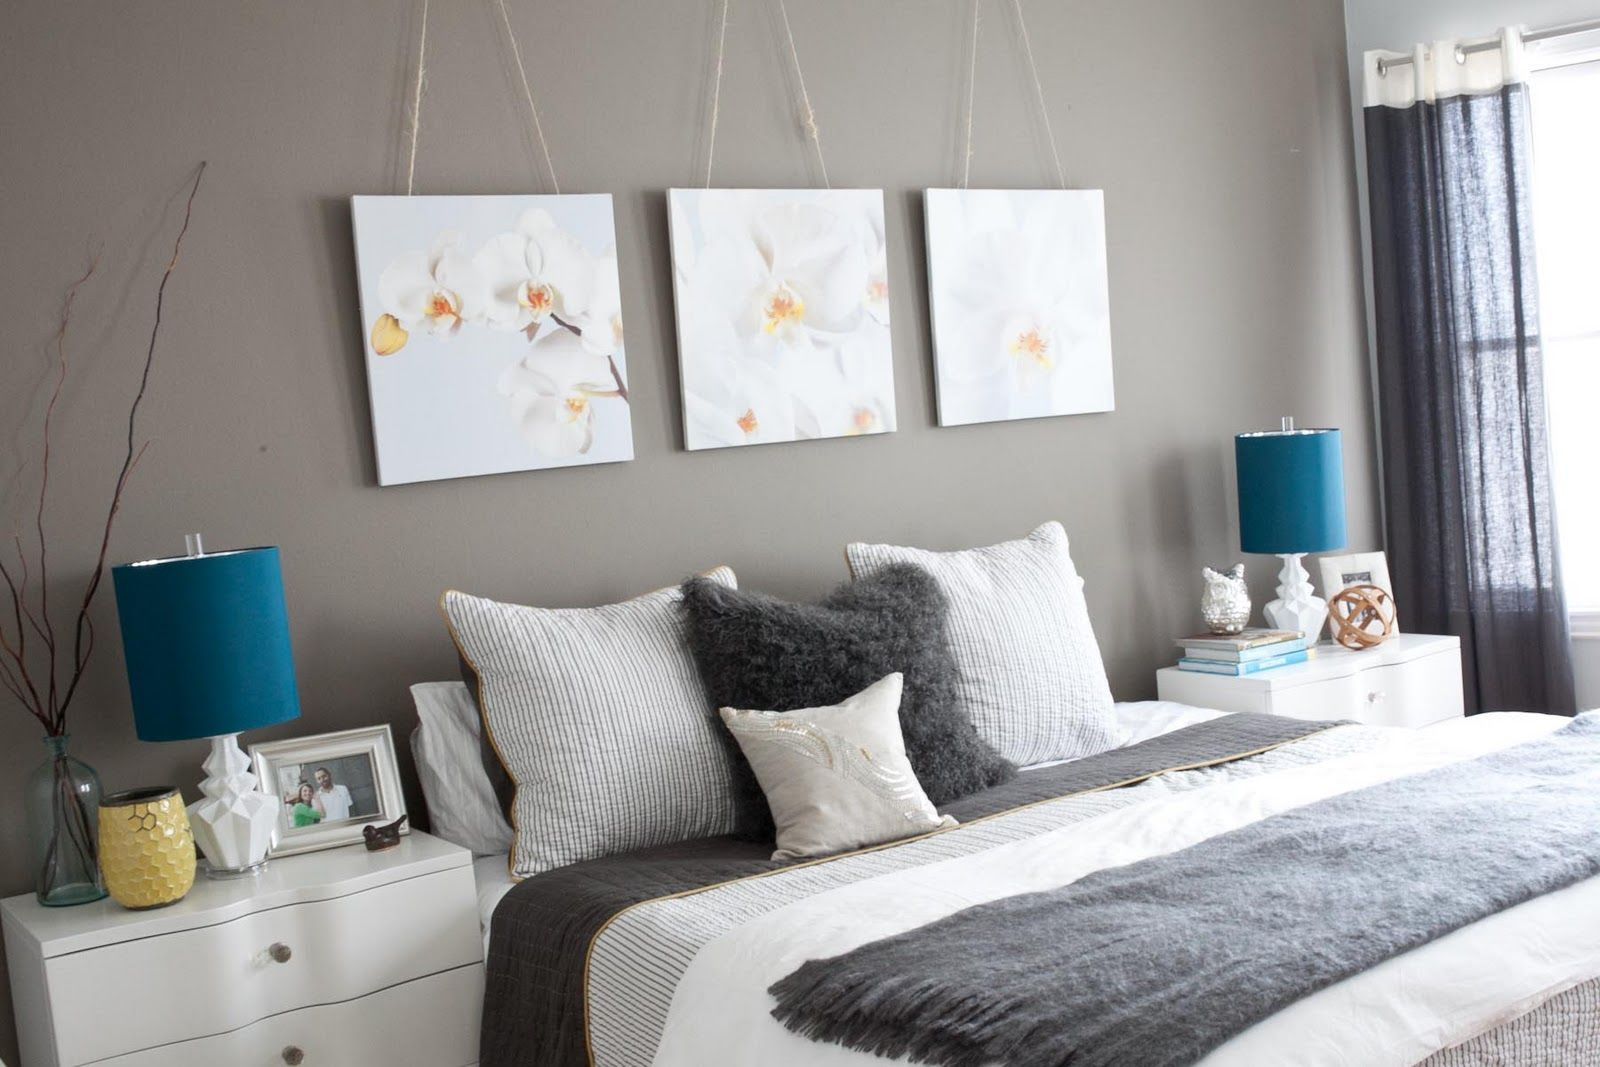 the sheets & the art above the bed - grey & white | home | Pinterest ...